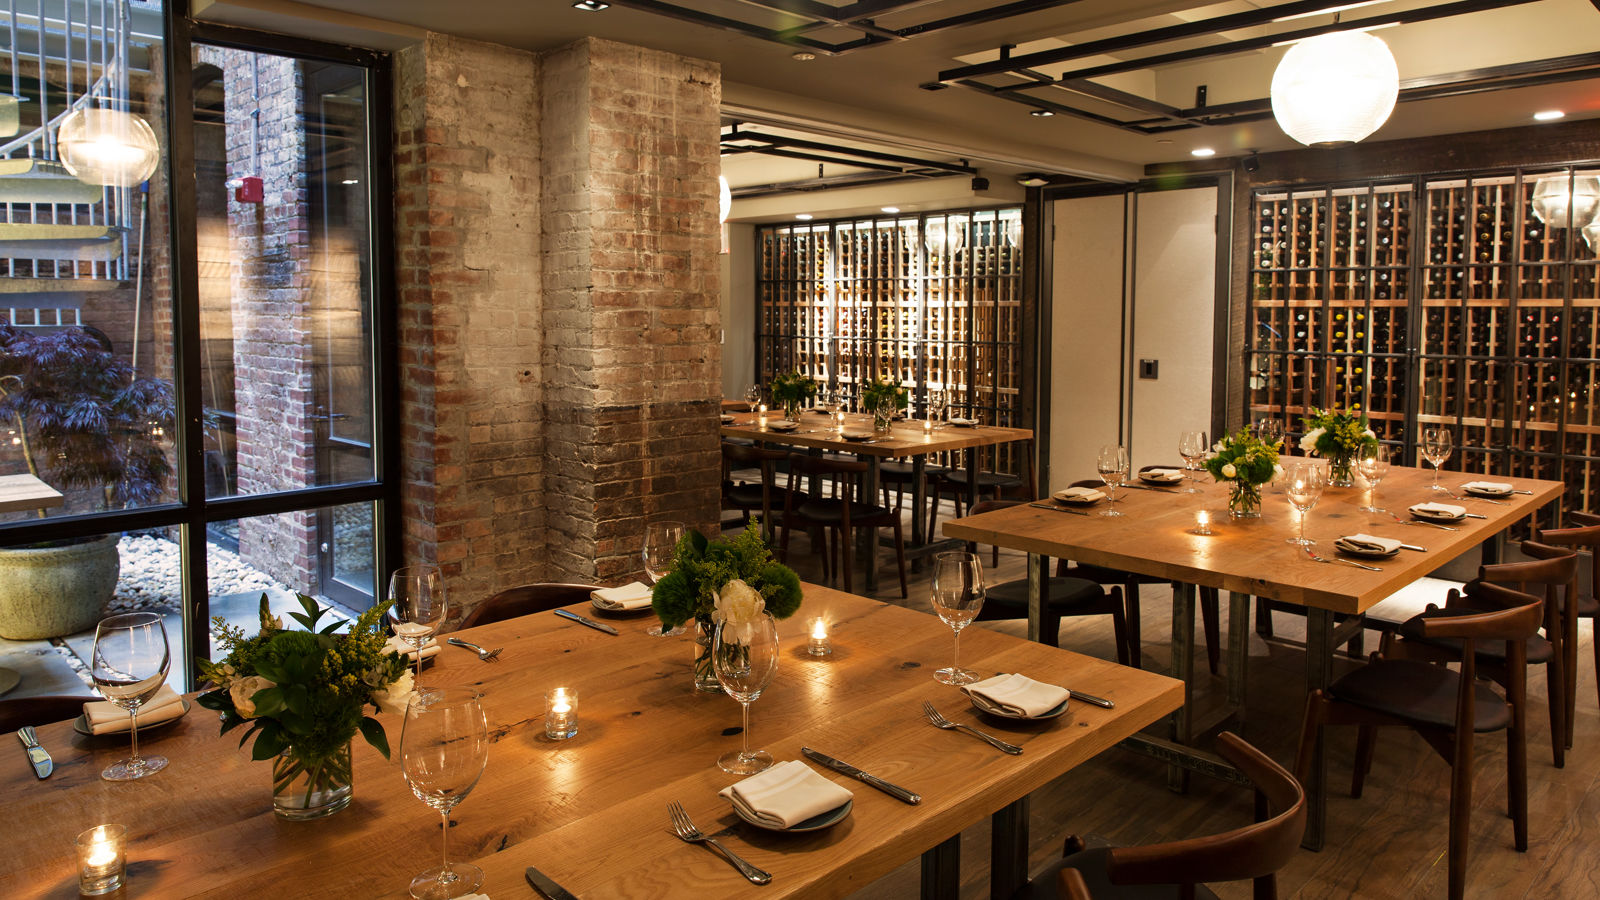 Private Dining Room With Three Set Tables